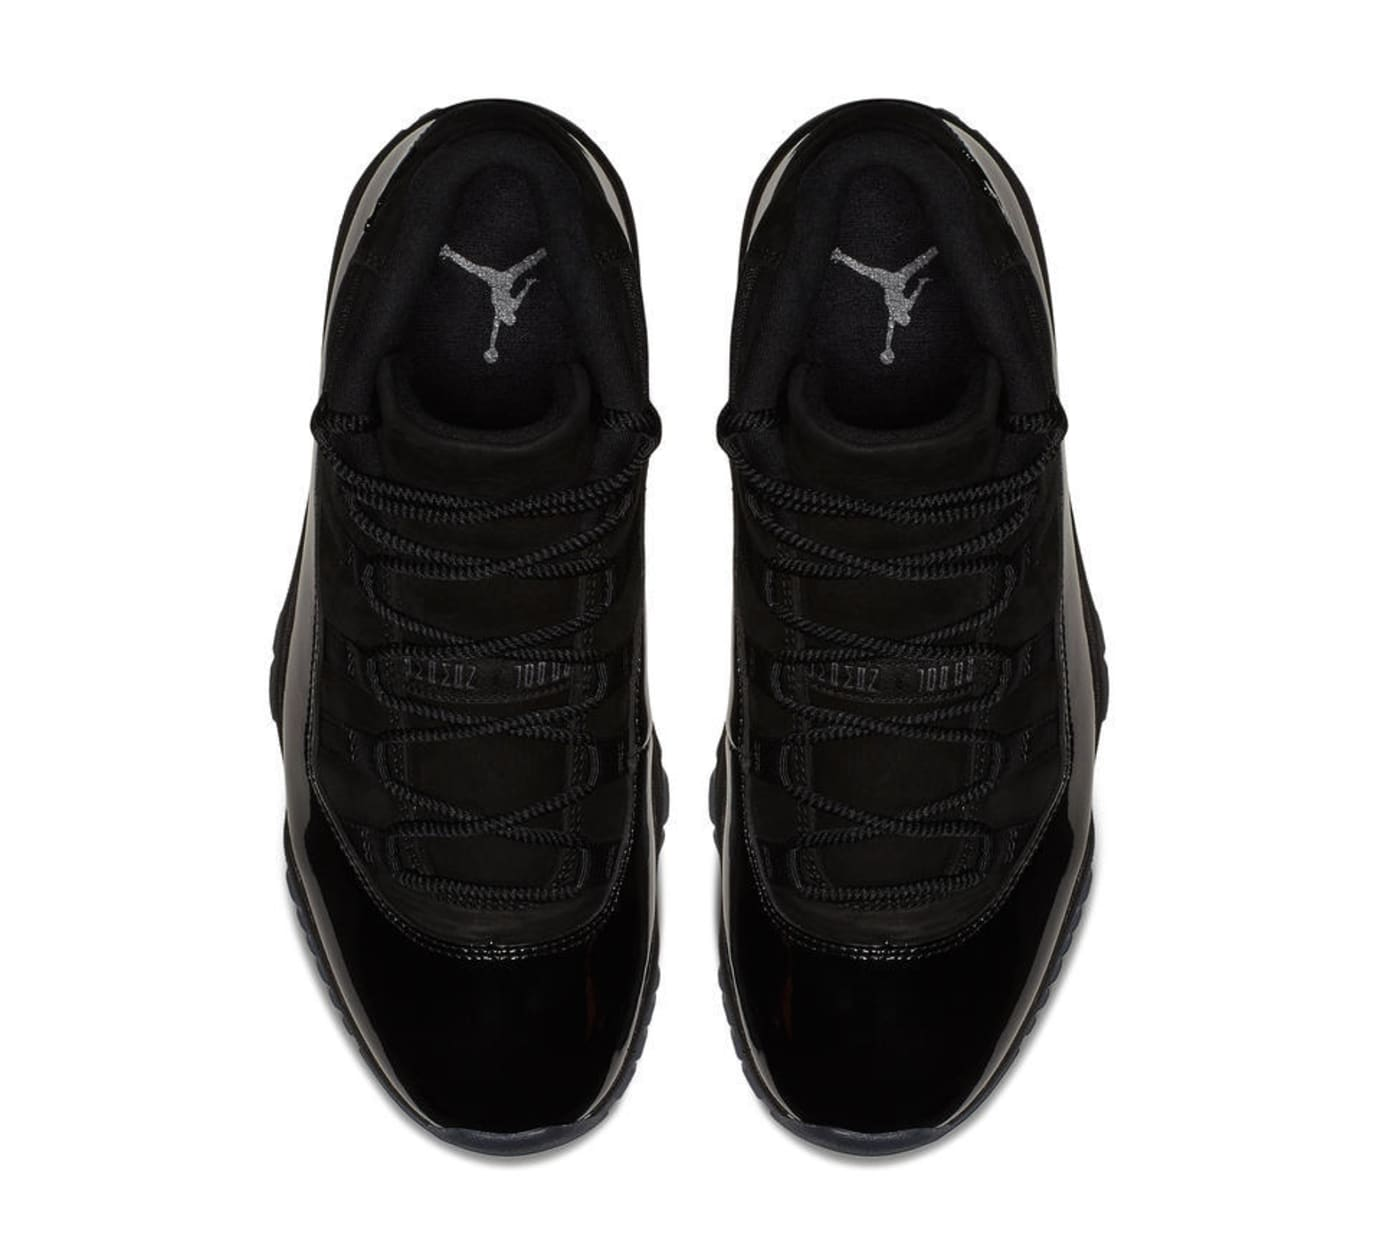 8afc59f33cd126 Image via Nike Air Jordan 11  Cap and Gown  378037-005 (Top)